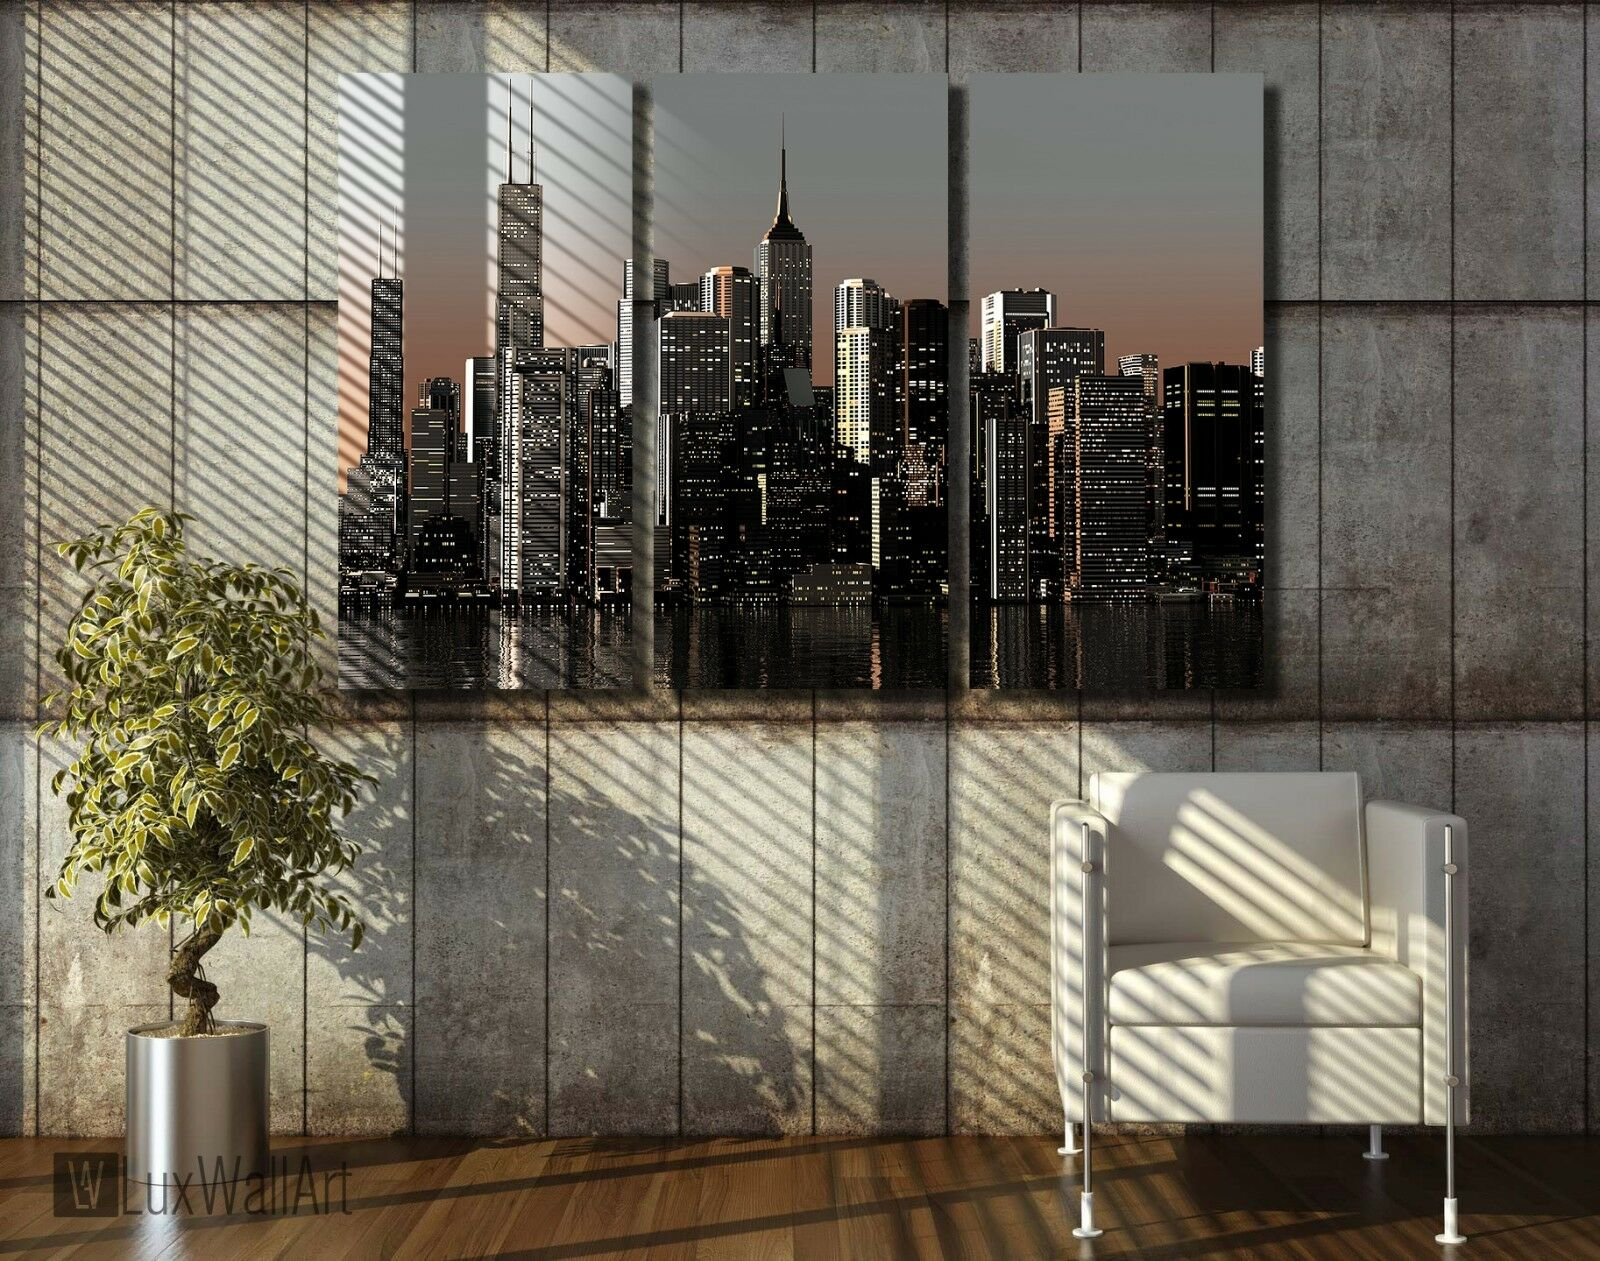 City Night Wall Art Metal Print Decor Ready to Hang